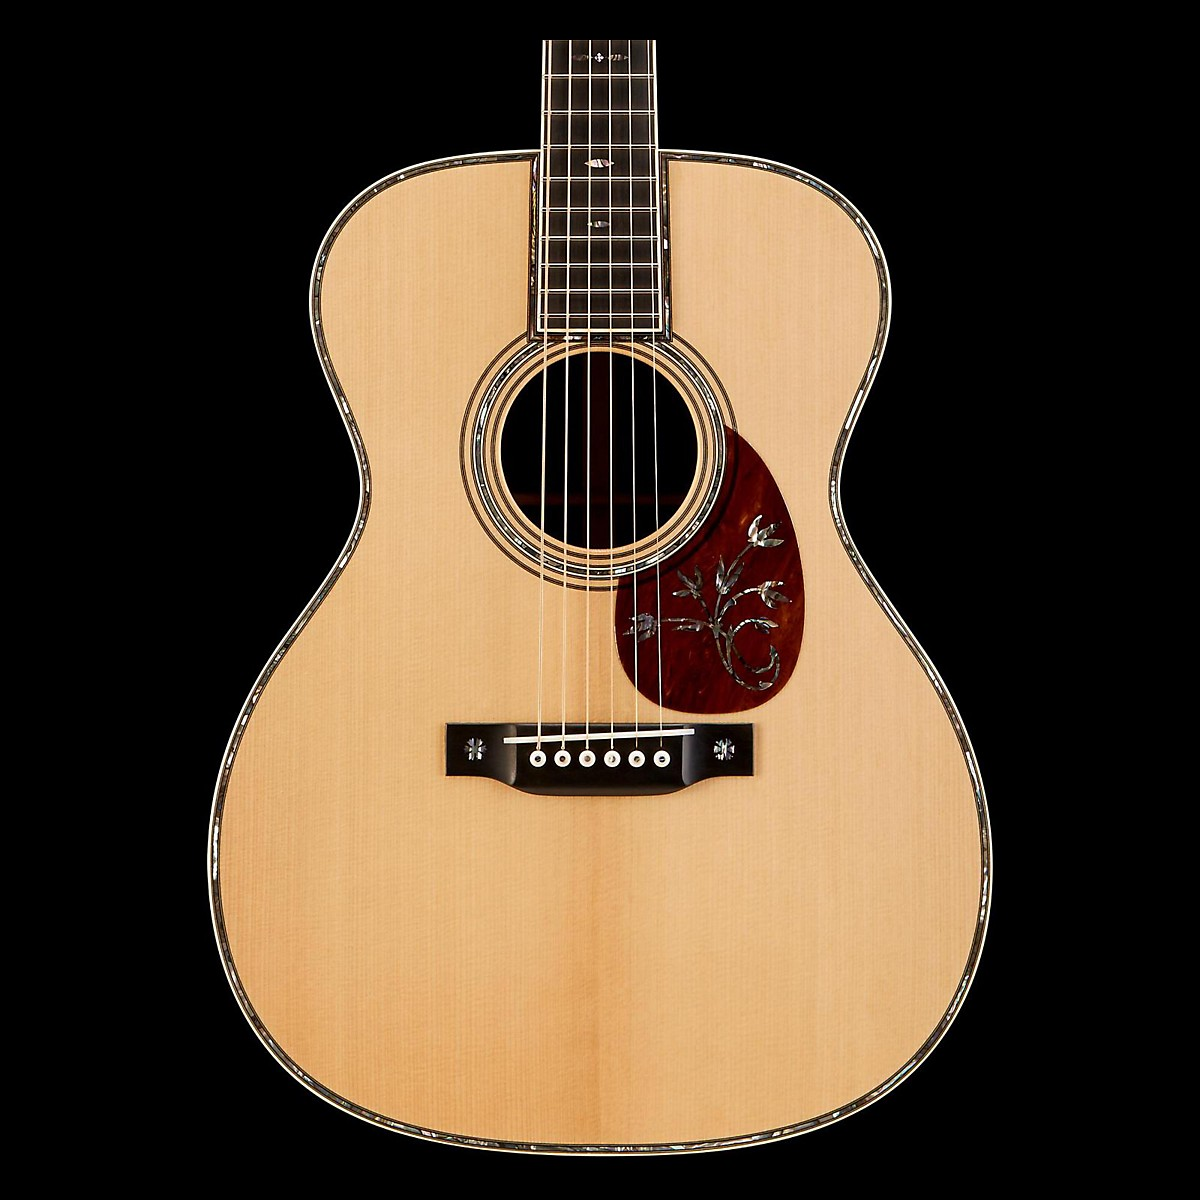 Martin OM-45 Deluxe Authentic 1930 VTS Brazilian Rosewood Acoustic Guitar